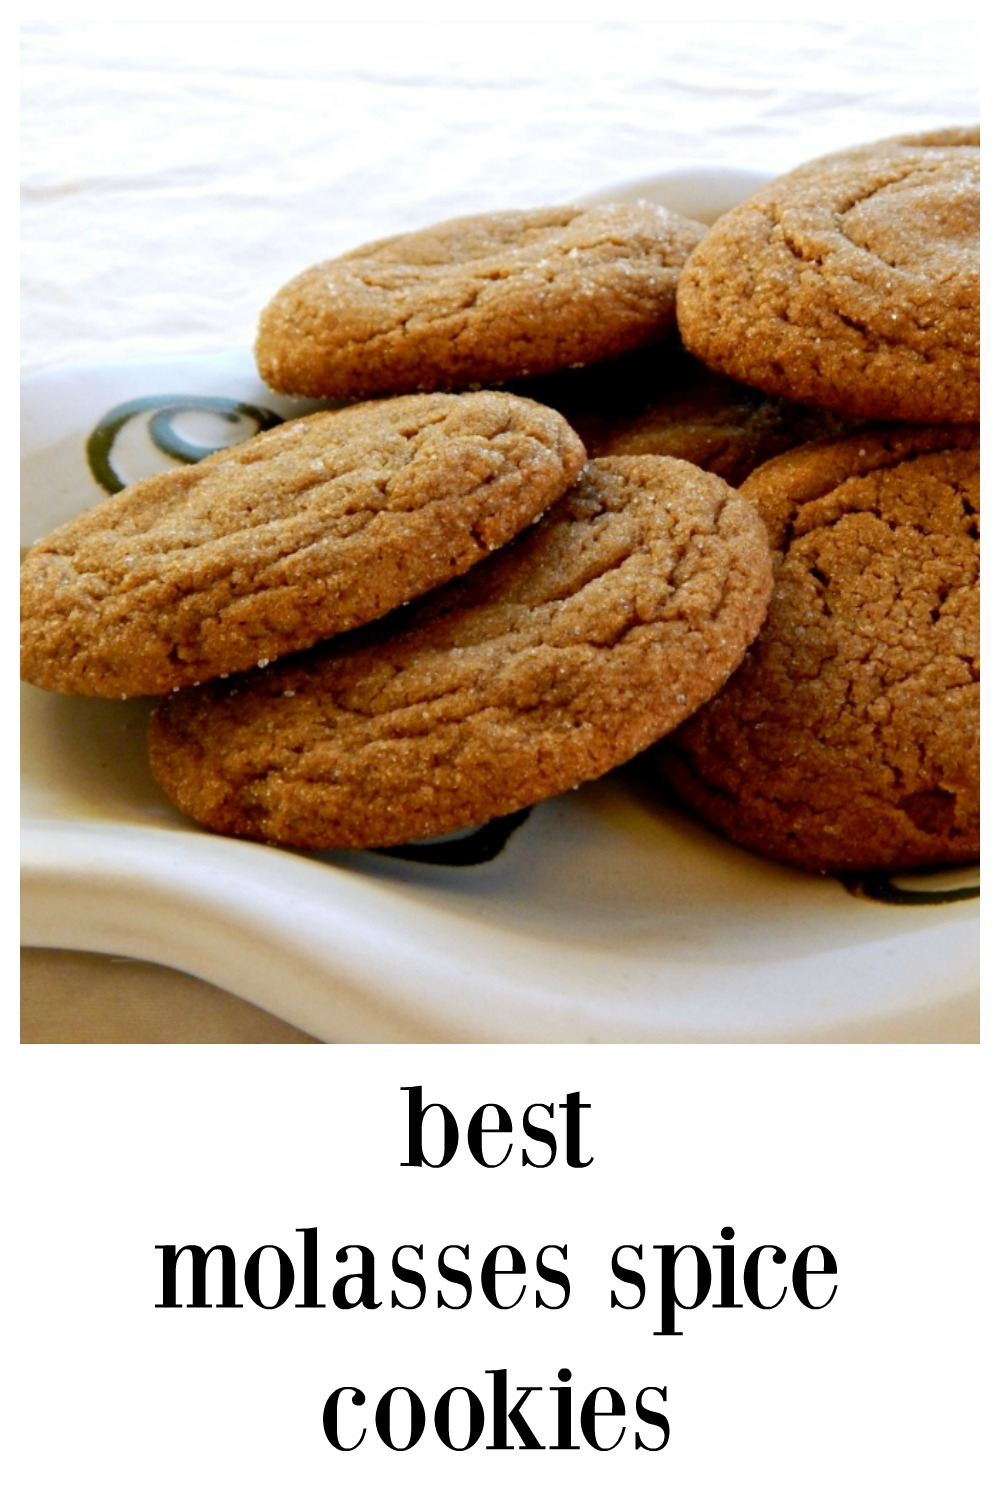 Molasses Spice Cookies, perfect for the season! They\'re crispy, chewy deliciousness and they are downright addictive. The recipe is adapted from Cooks Illustrated so you know it\'s gotta be the best! #MolassesSpiceCookies  #ChristmasCookies #MolassesCookies